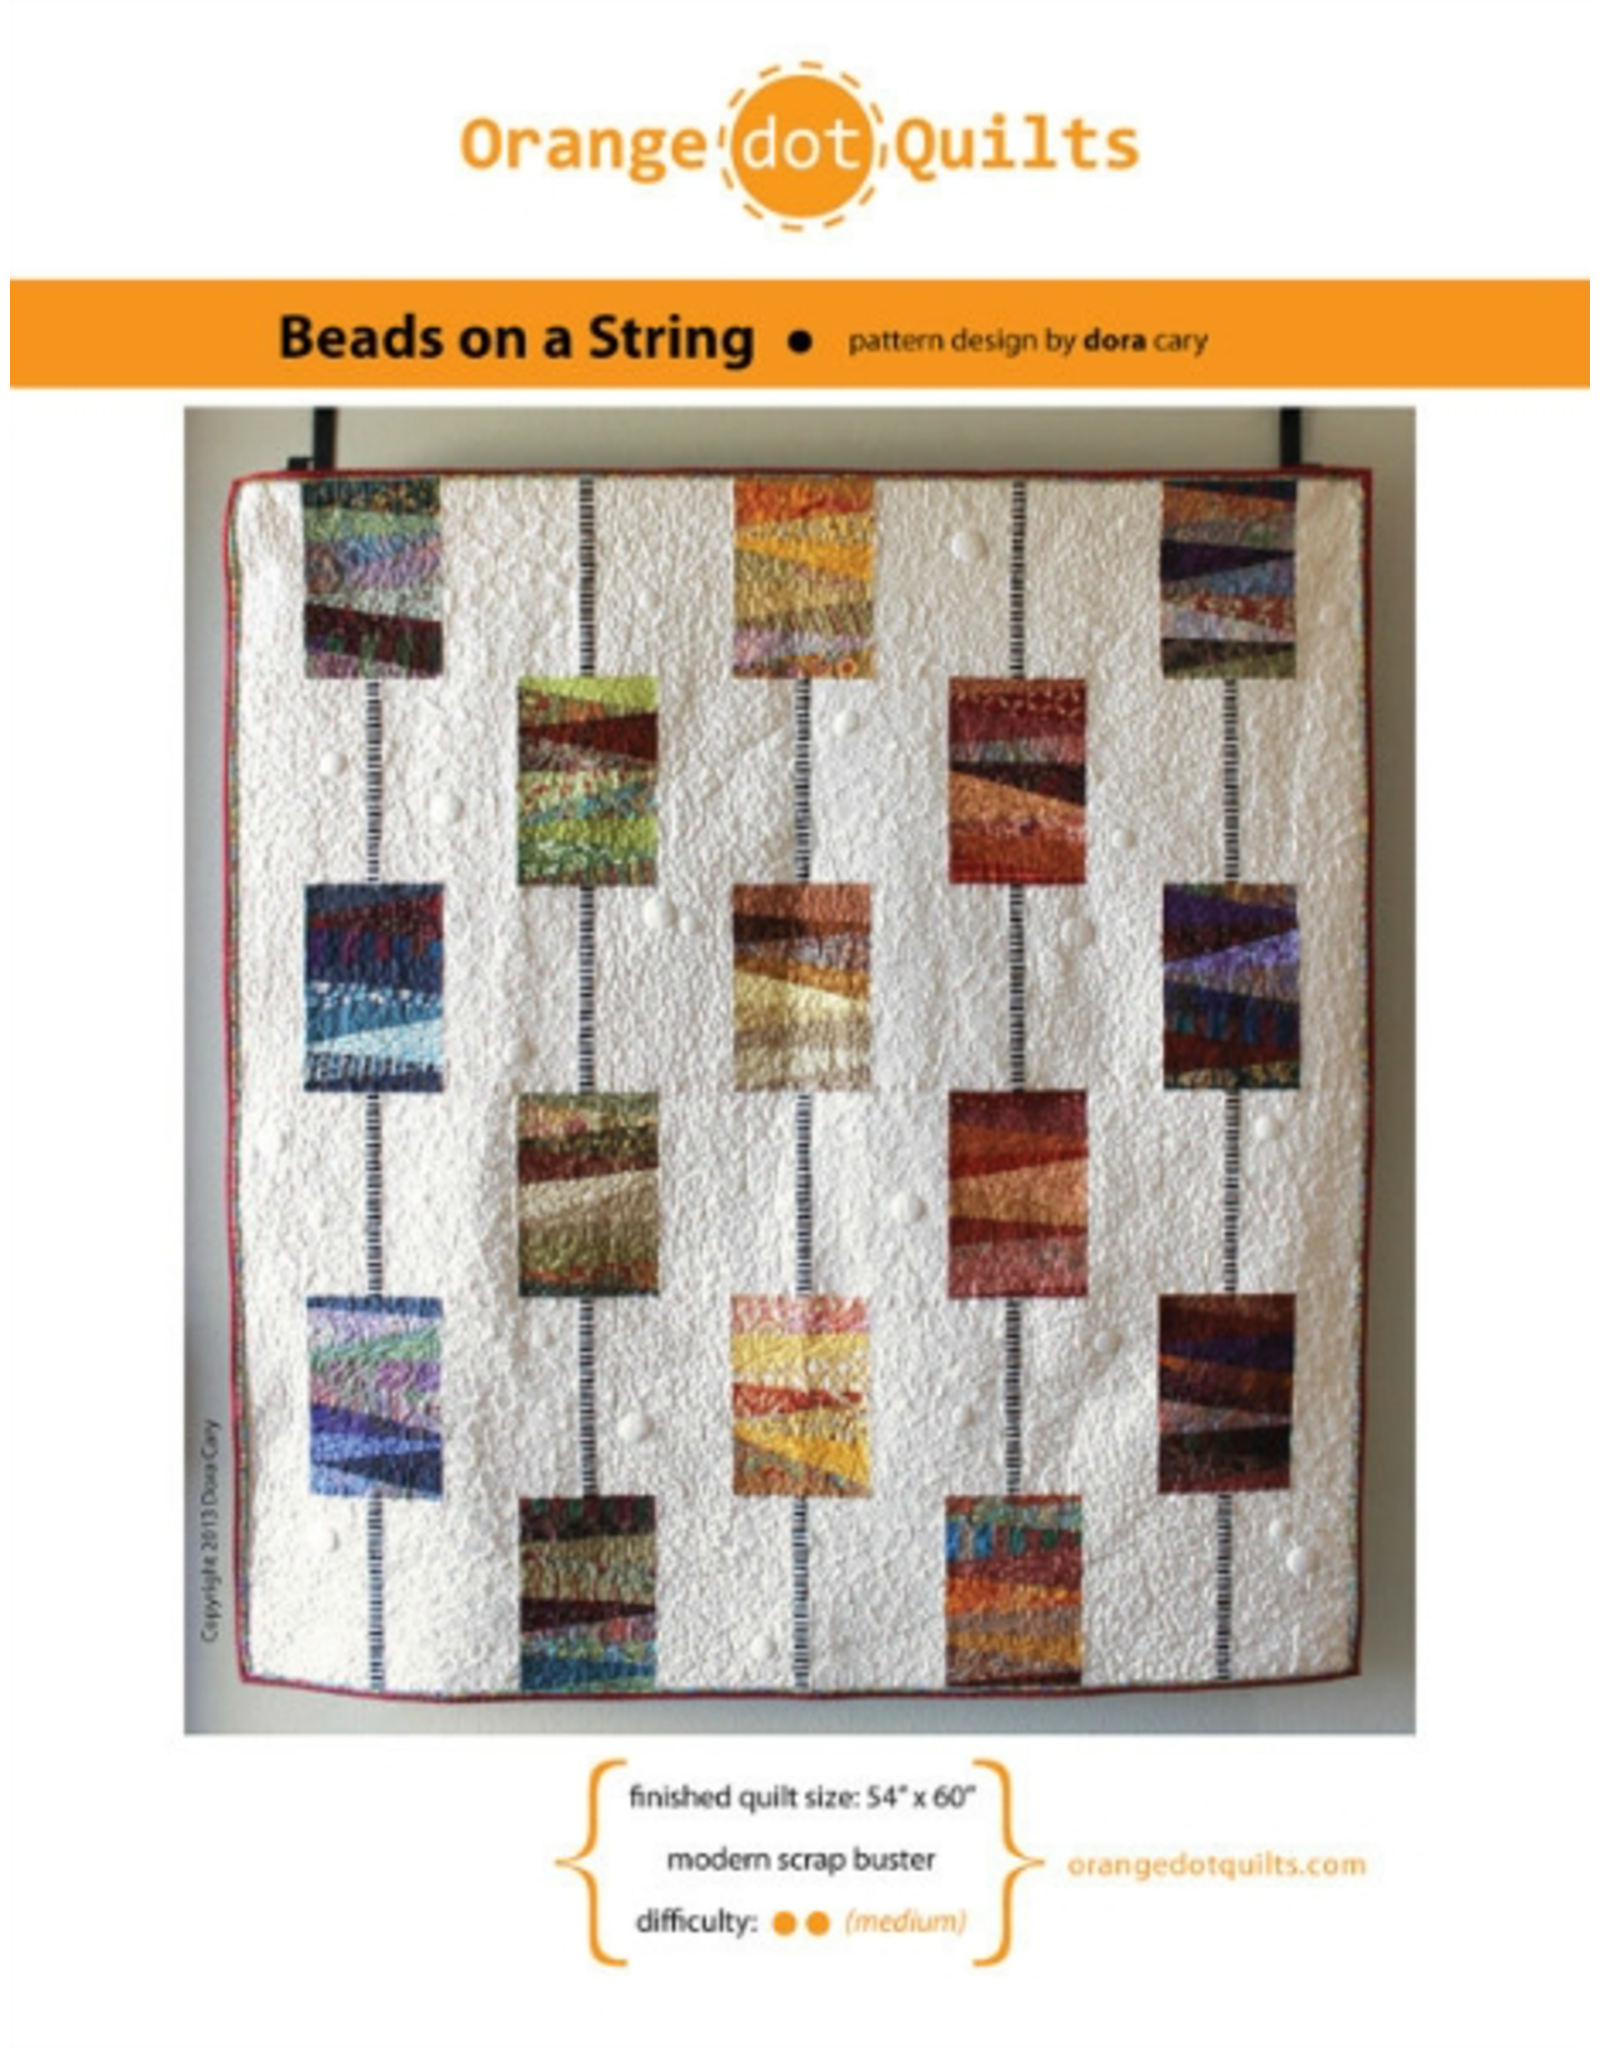 Orange Dot Quilts Beads on a String Quilt Pattern